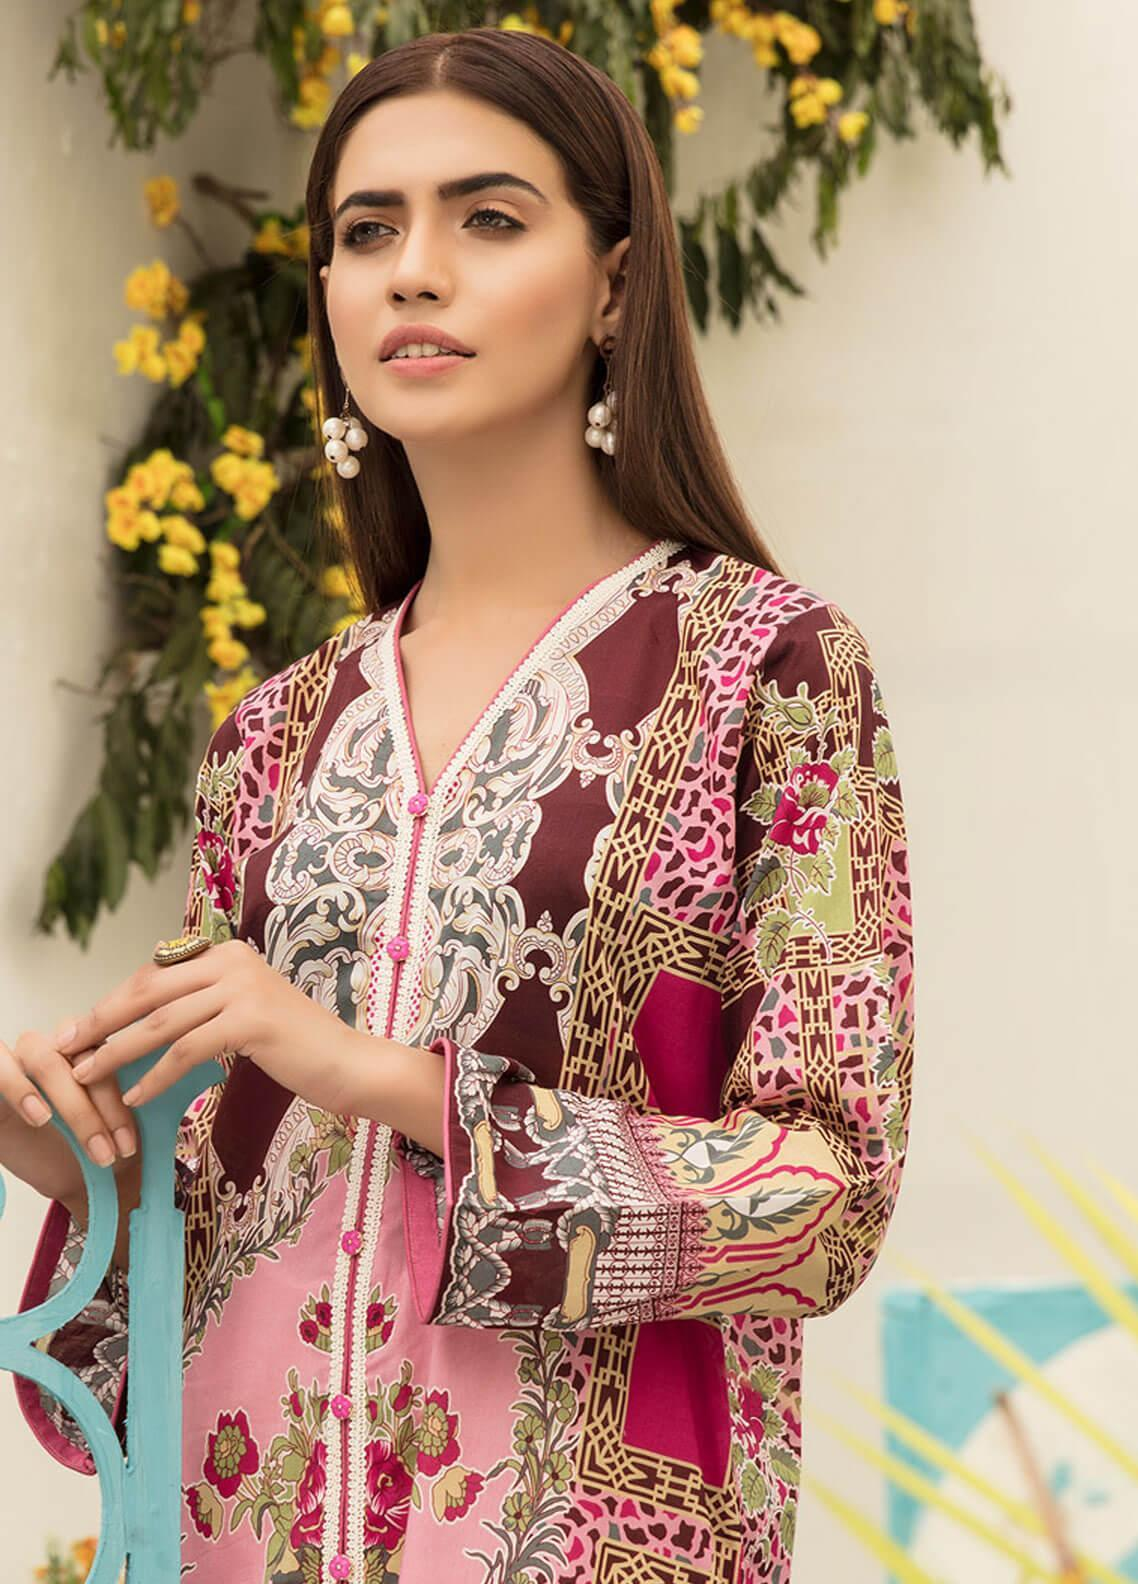 Sanoor by Noor Fatima Printed Lawn Unstitched Kurties SNO19F 873 - Festive Collection